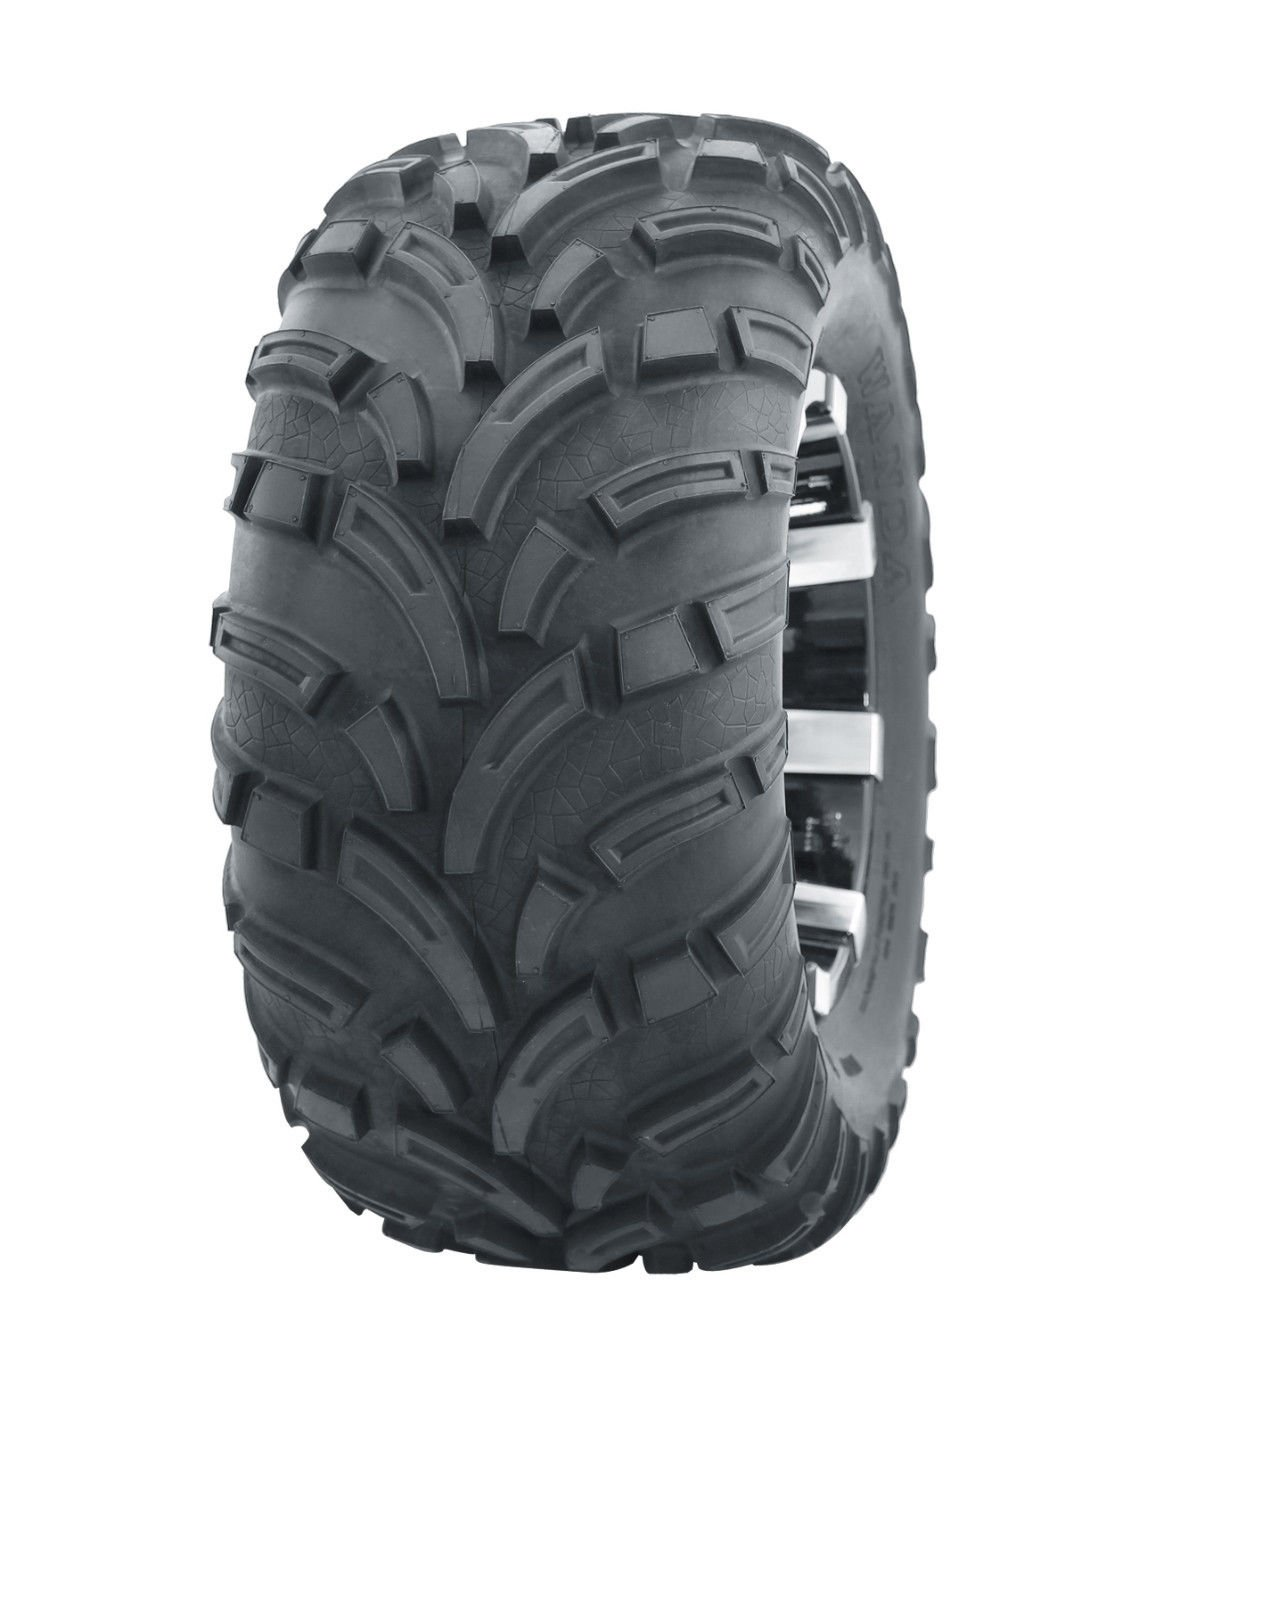 4 New WANDA ATV Tires AT 25x8-12 Front & 25x10-12 Rear /6PR -10243/10244 6PR P373 by Skroutz by Wanda (Image #2)